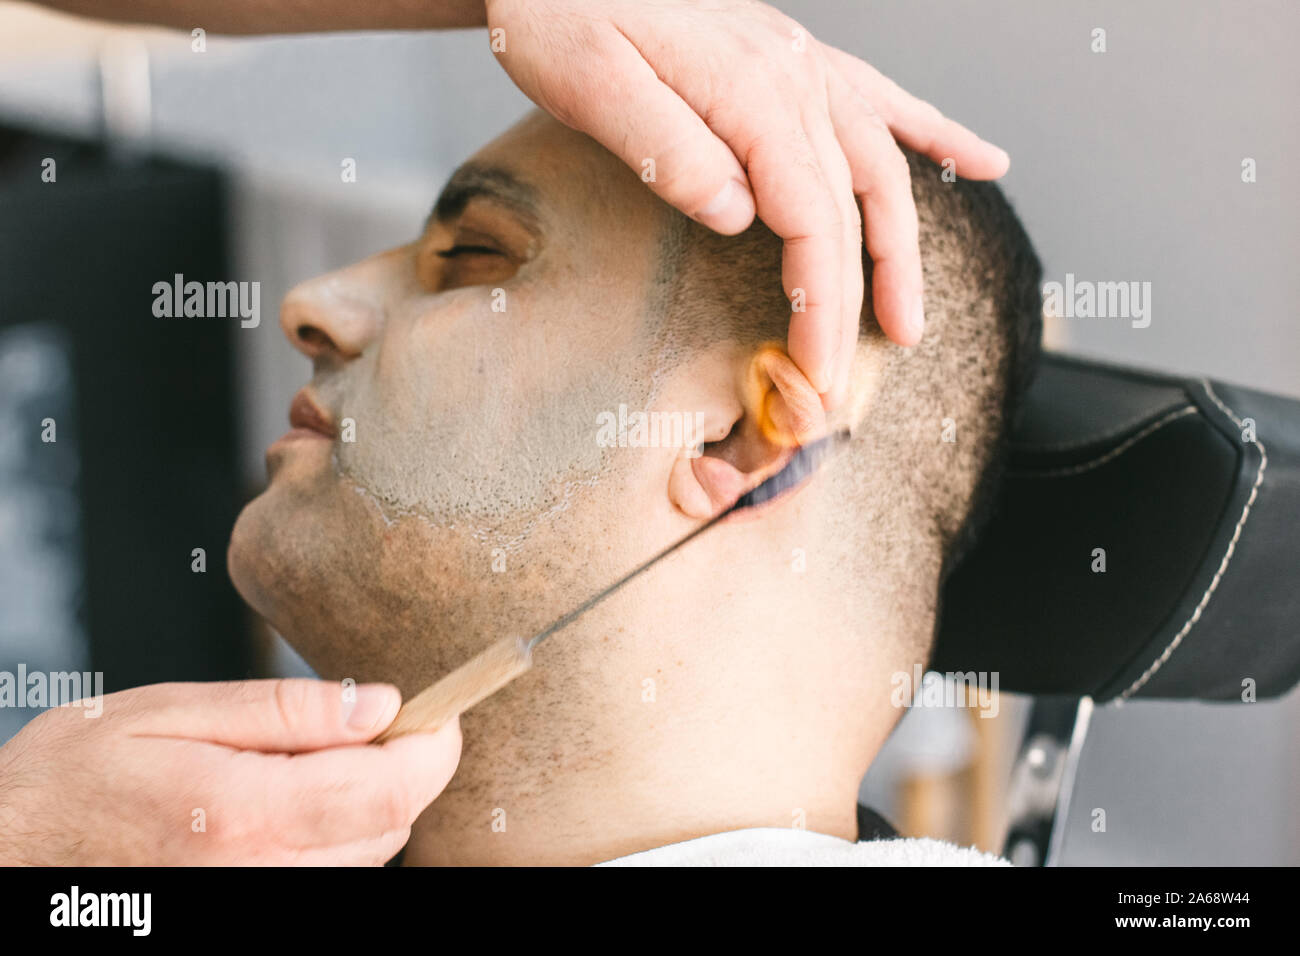 Hairdresser removes hair from the ears of man in a barber shop by burning fire. Stock Photo